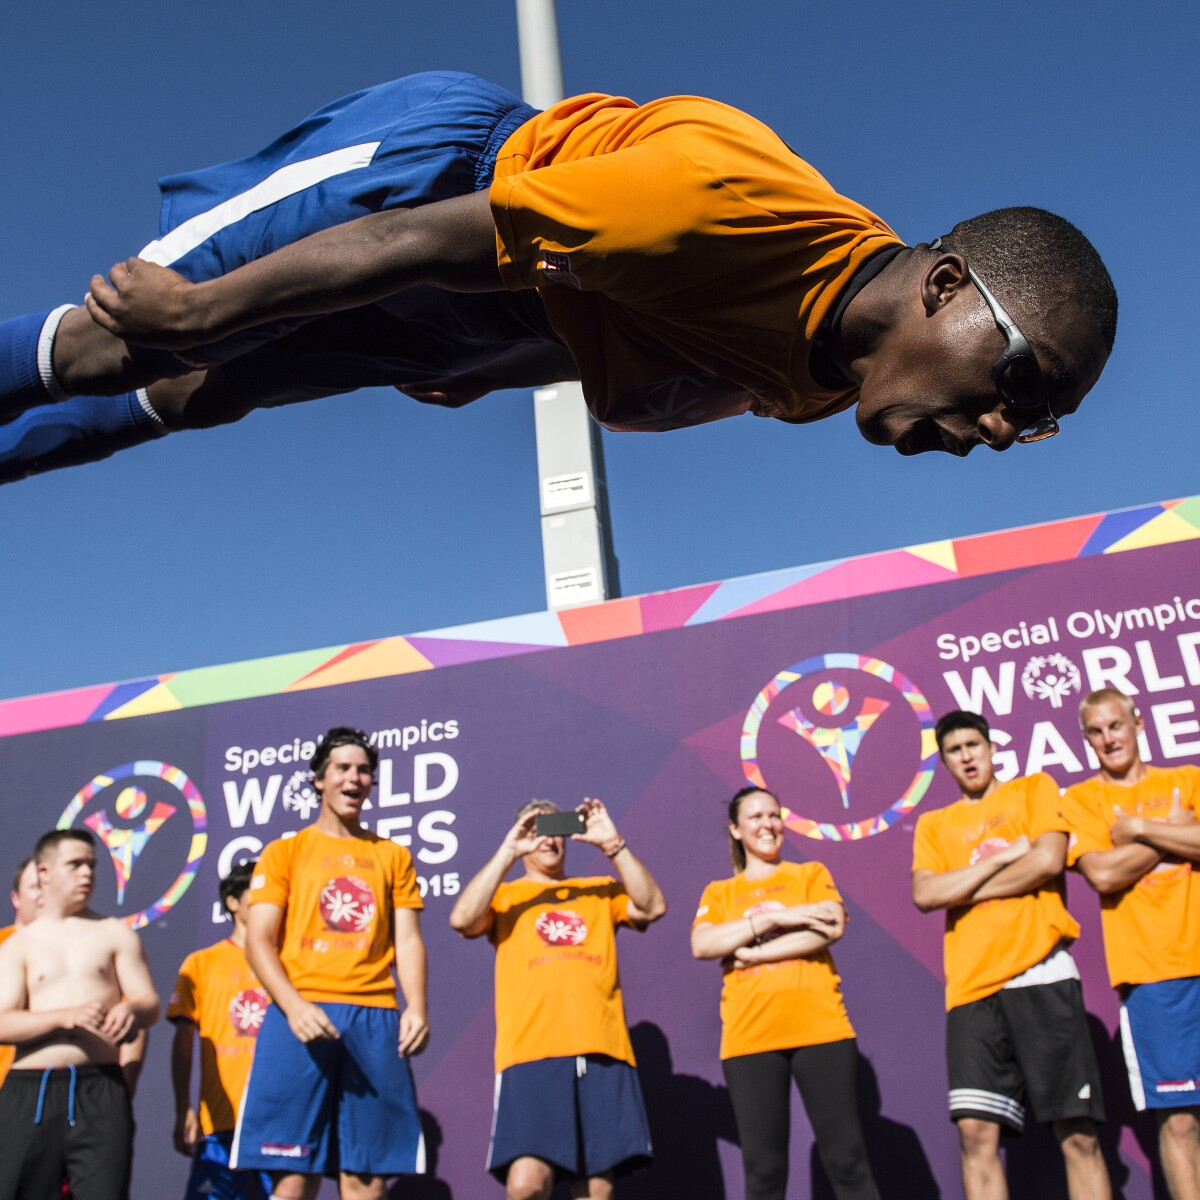 Soccer Players Jumping During the Unified Sports Experience at Special Olympics World Games, Los Angeles, 2015